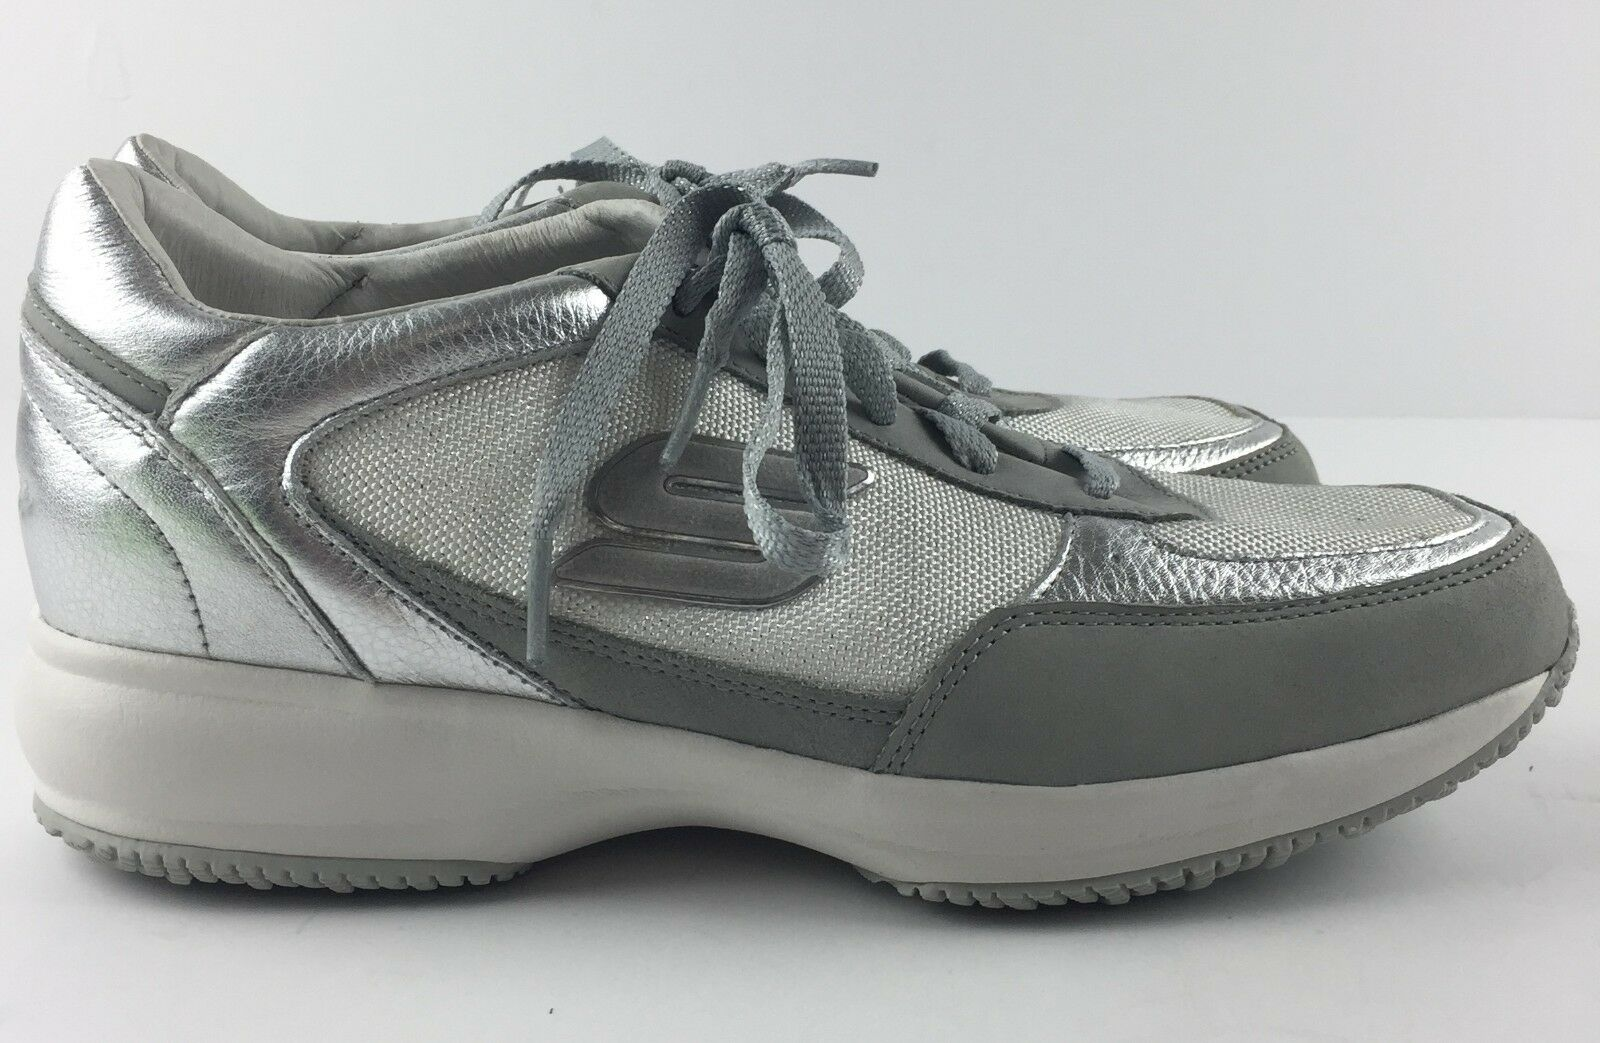 Skechers femmes US 9.5 argent Wedge Fit chaussures Fashion baskets Lace Up 48746